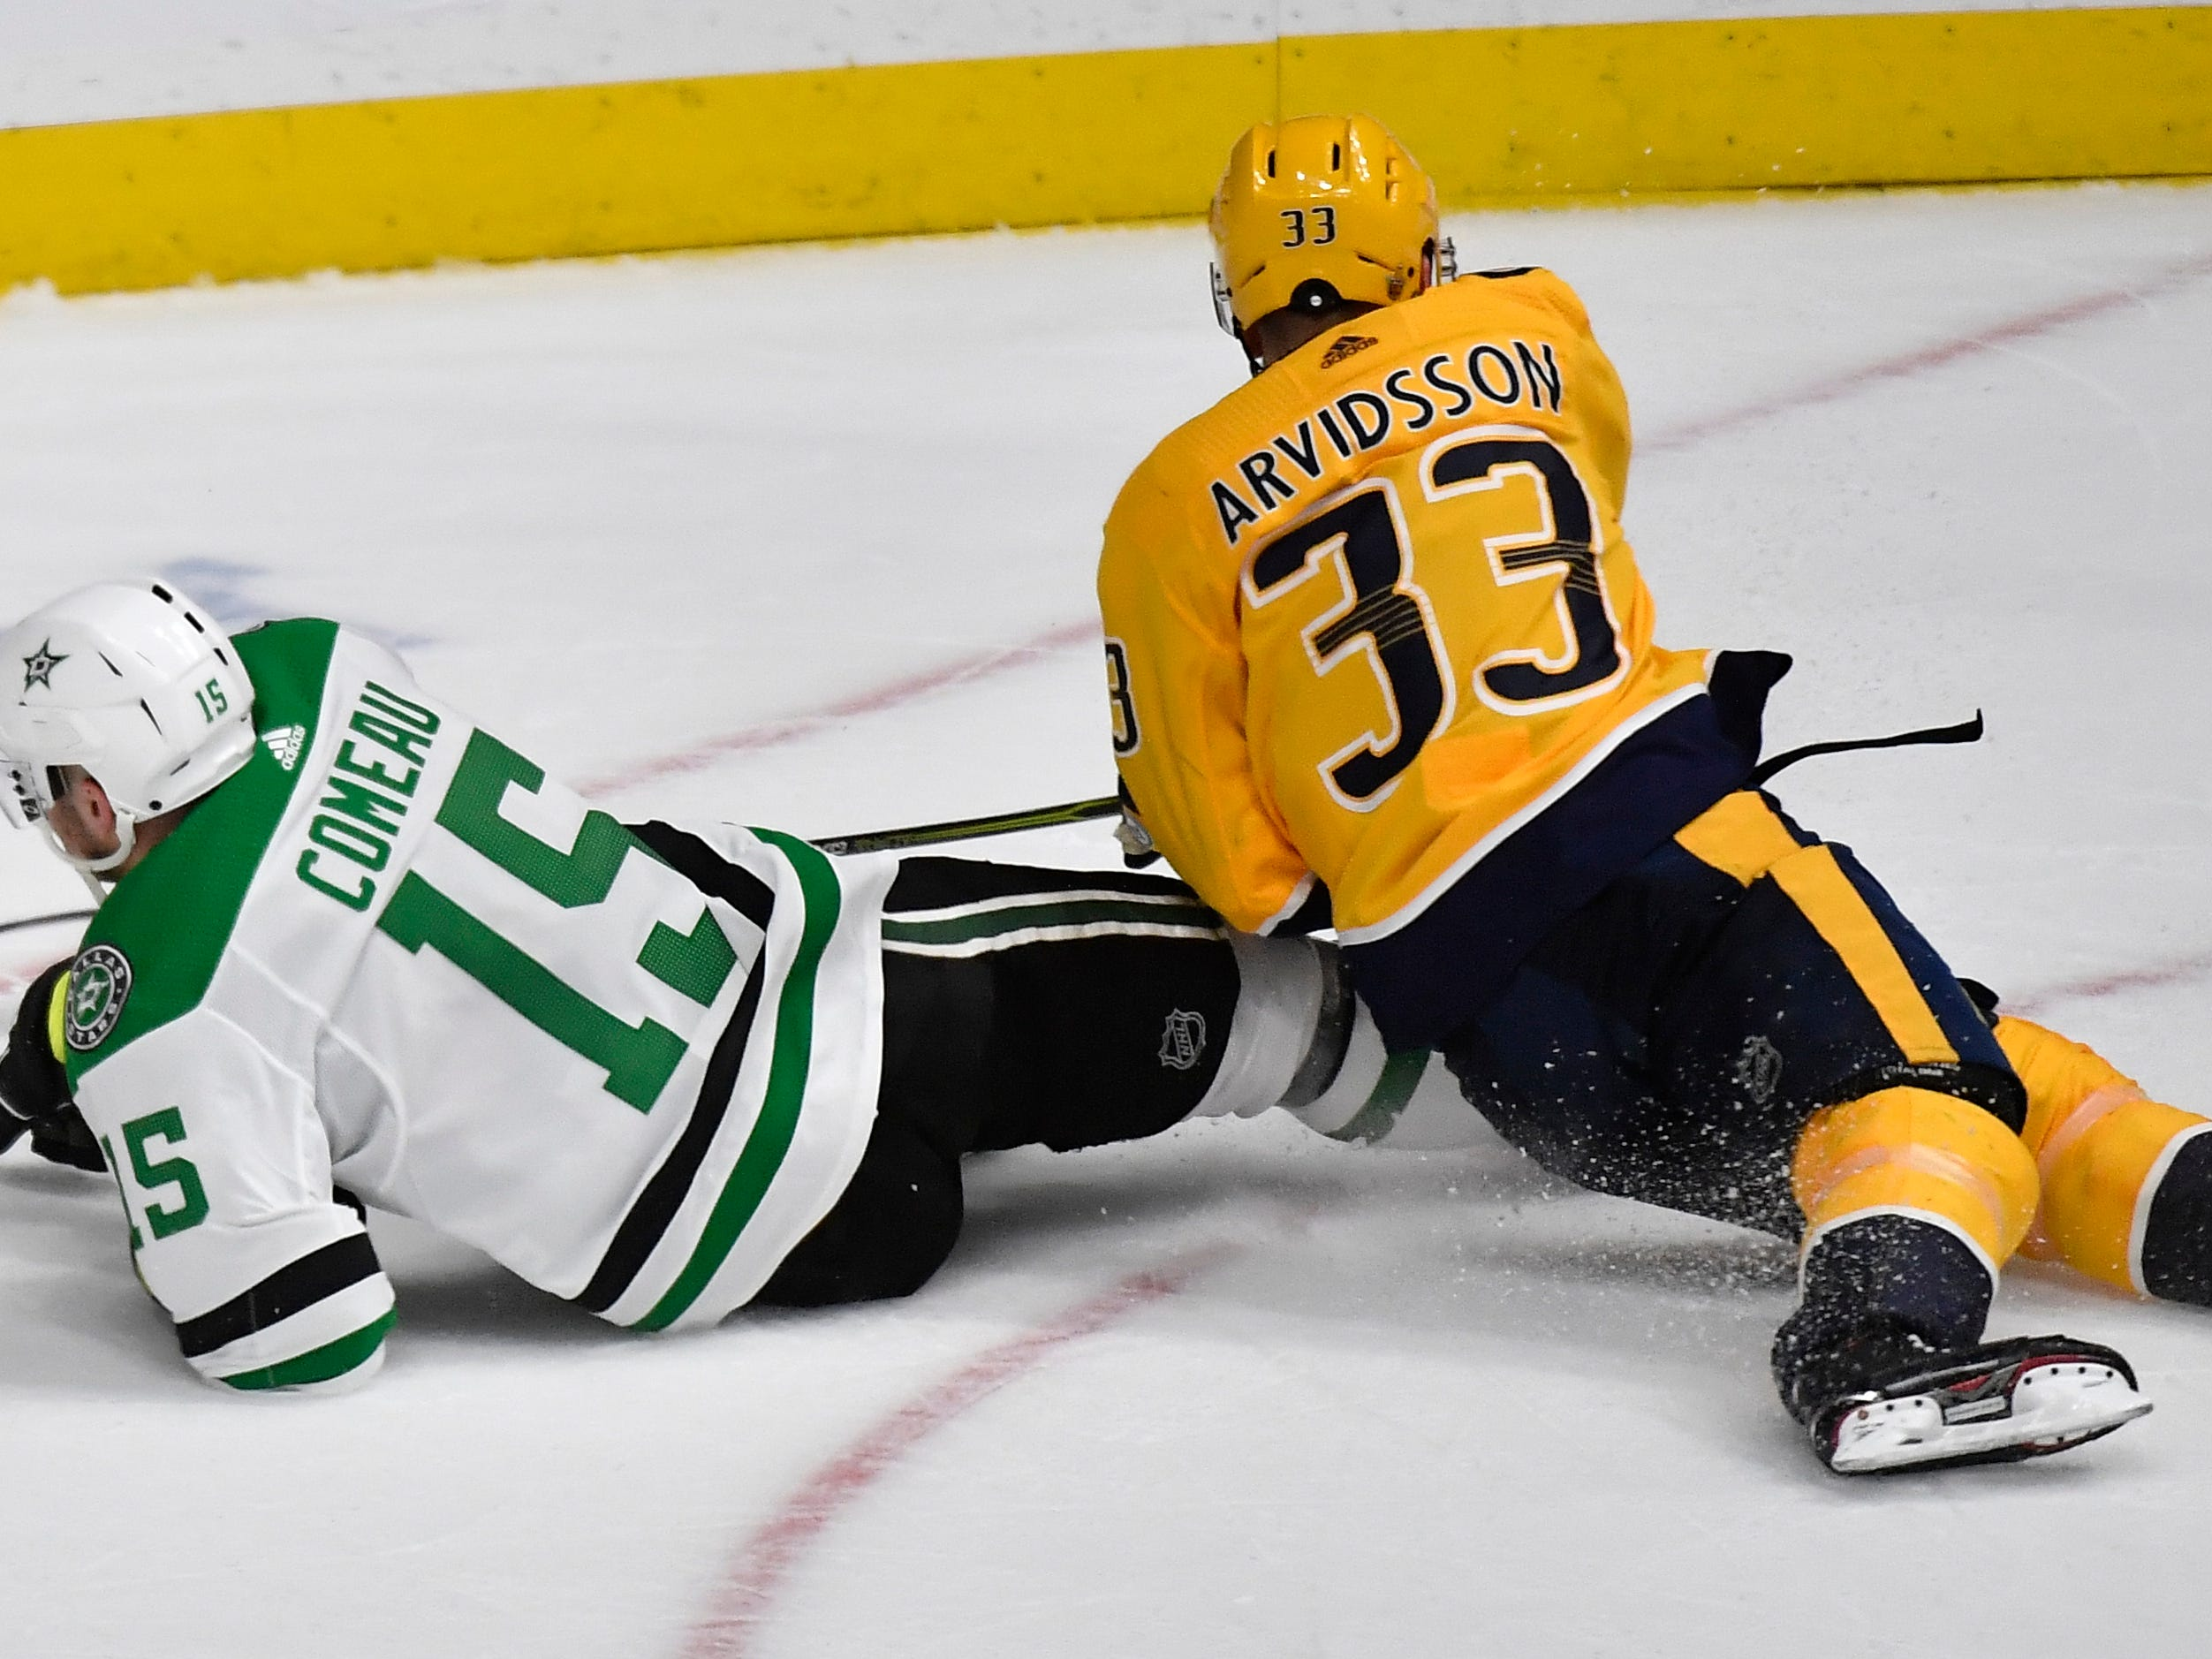 Nashville Predators right wing Viktor Arvidsson (33)  and Dallas Stars left wing Blake Comeau (15) battle for the puck during the third period of the divisional semifinal game at Bridgestone Arena in Nashville, Tenn., Wednesday, April 10, 2019.